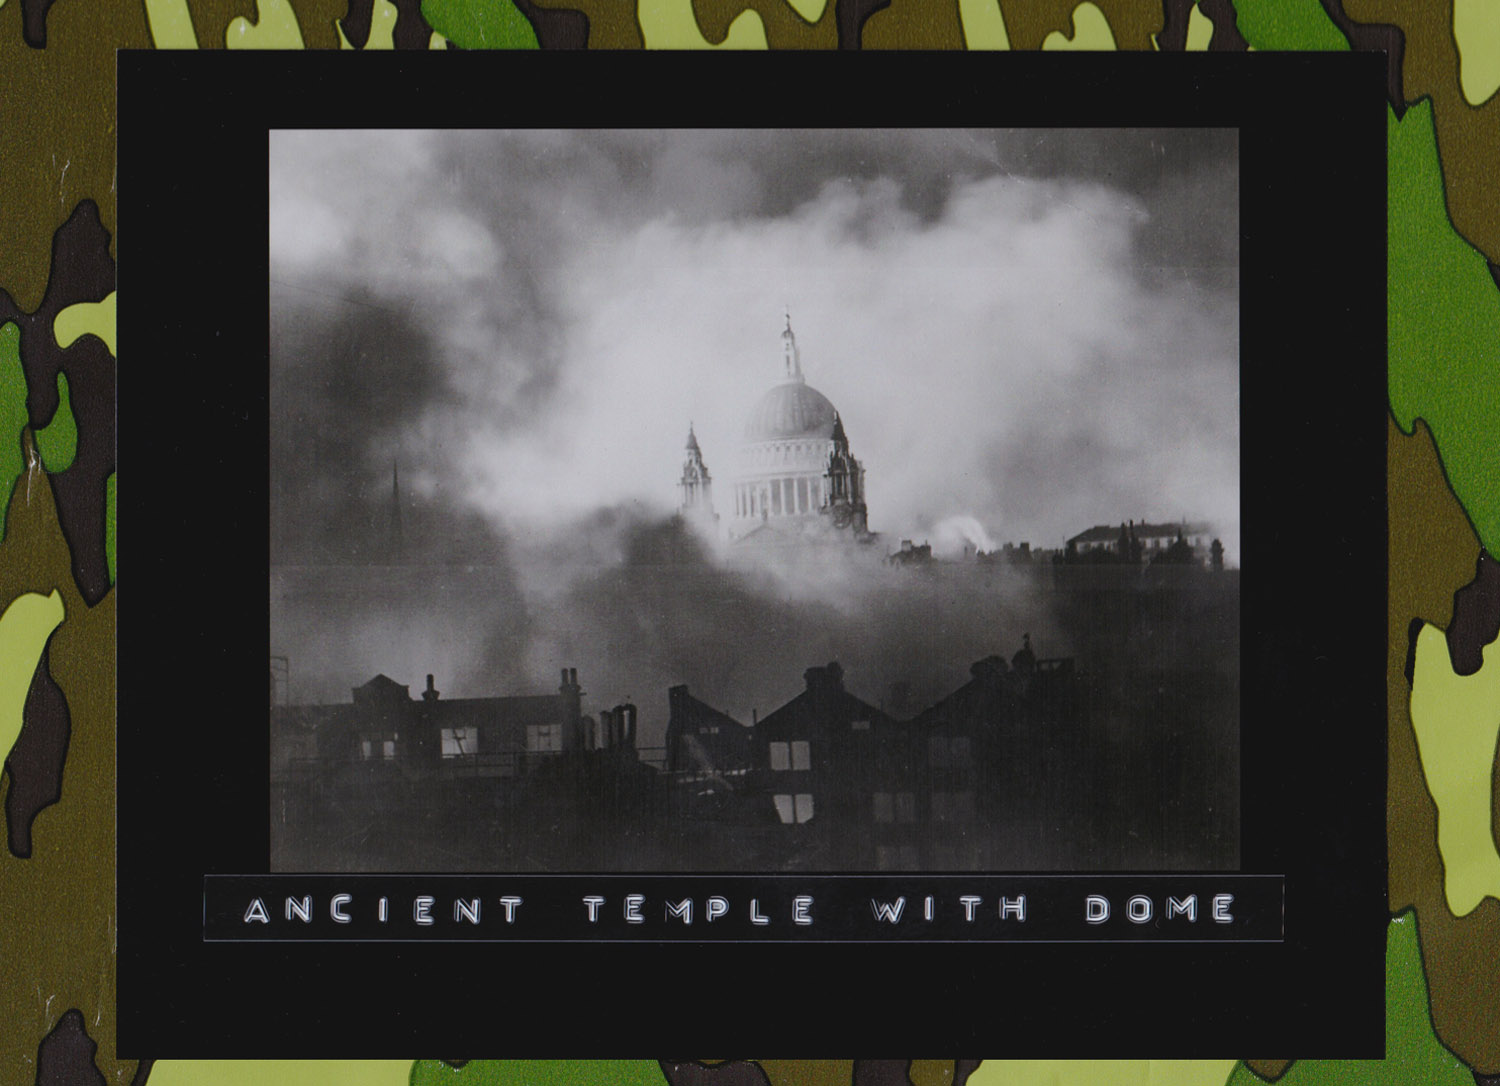 St. Paul's Cathedral photographed through the flames and smoke of surrounding buildings during the great fire raid of Sunday December 29, 1940, the 114th night of the Blitz, London. (Photo: Herbert Mason)